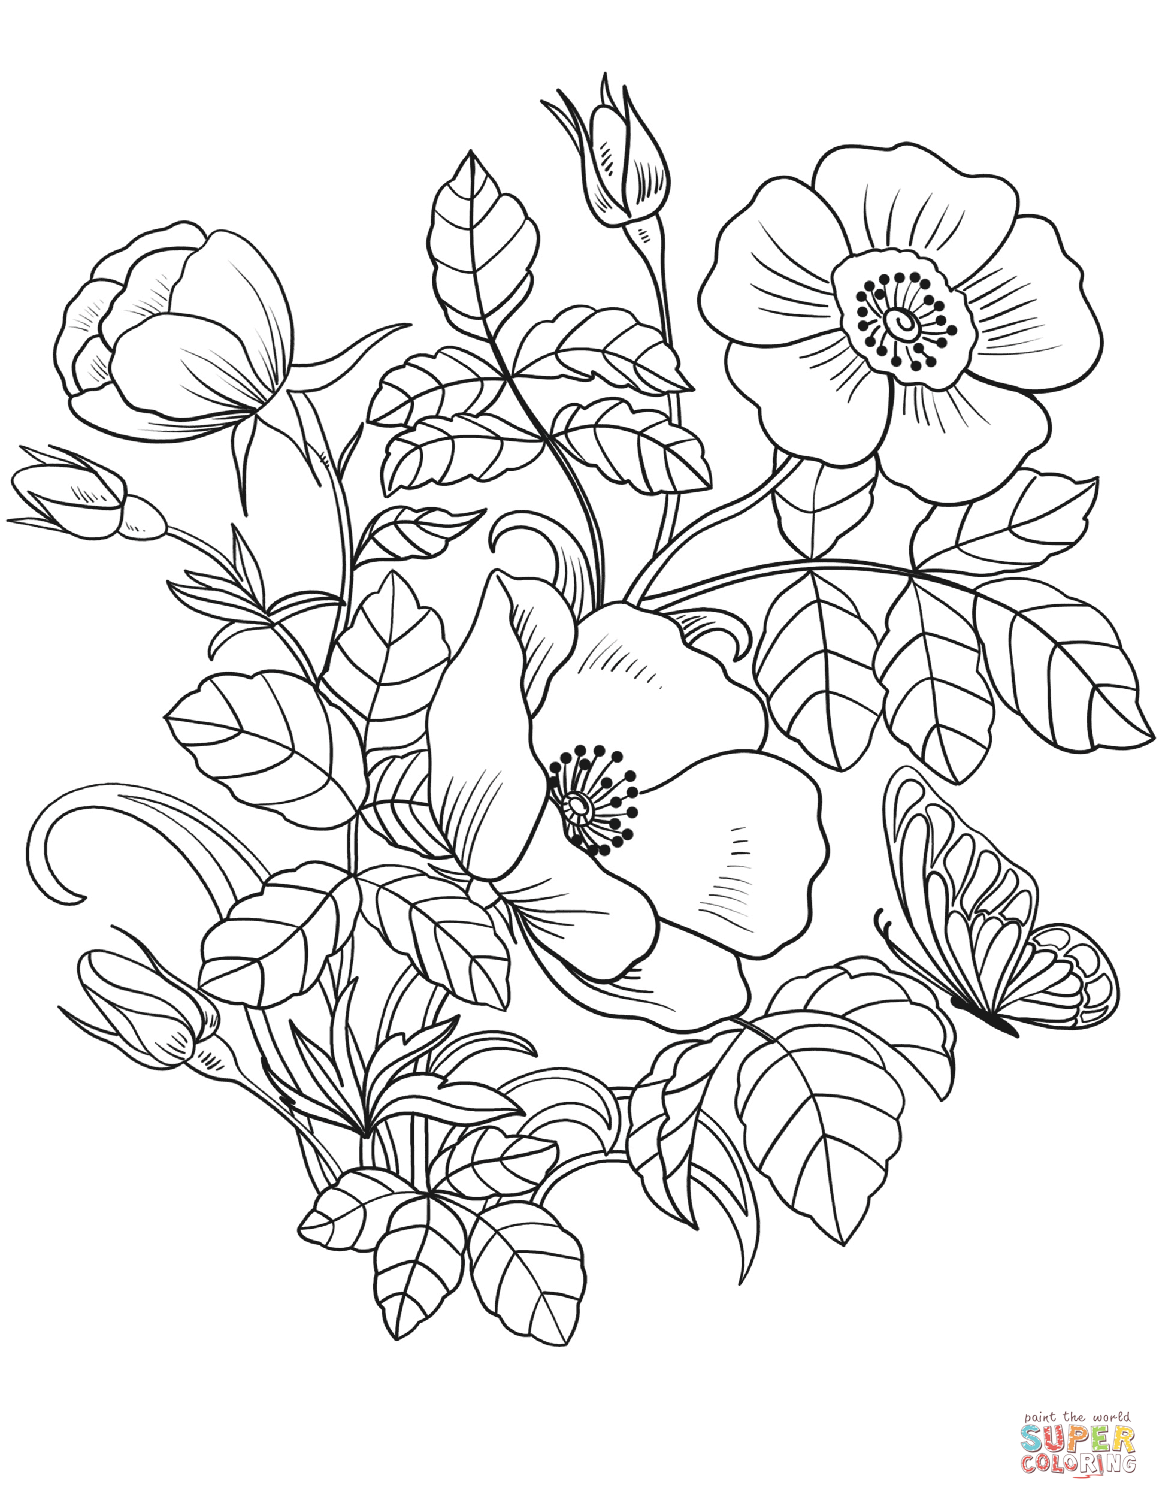 Spring Flowers Super Coloring Printable flower